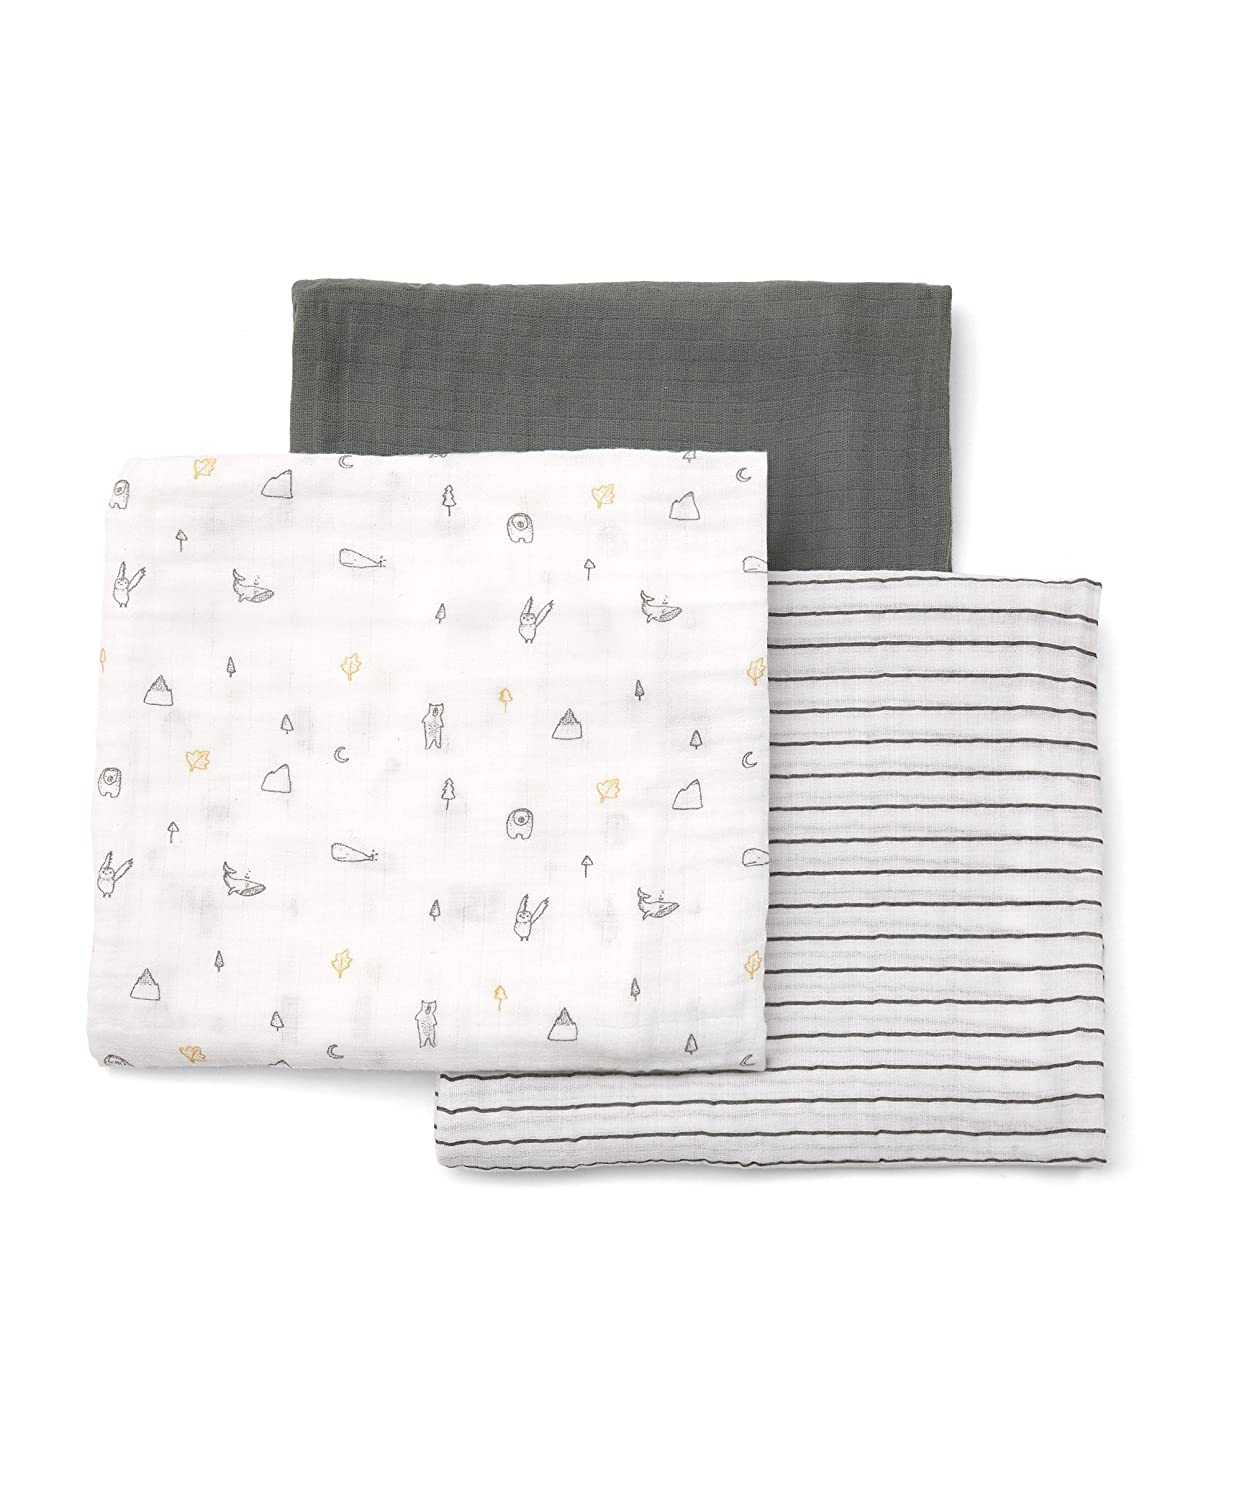 Mamas & Papas 3 Pack Large 100% Cotton Muslin Squares - Grey KATIES PLAYPEN® / BABY BEST BUYS 723346800